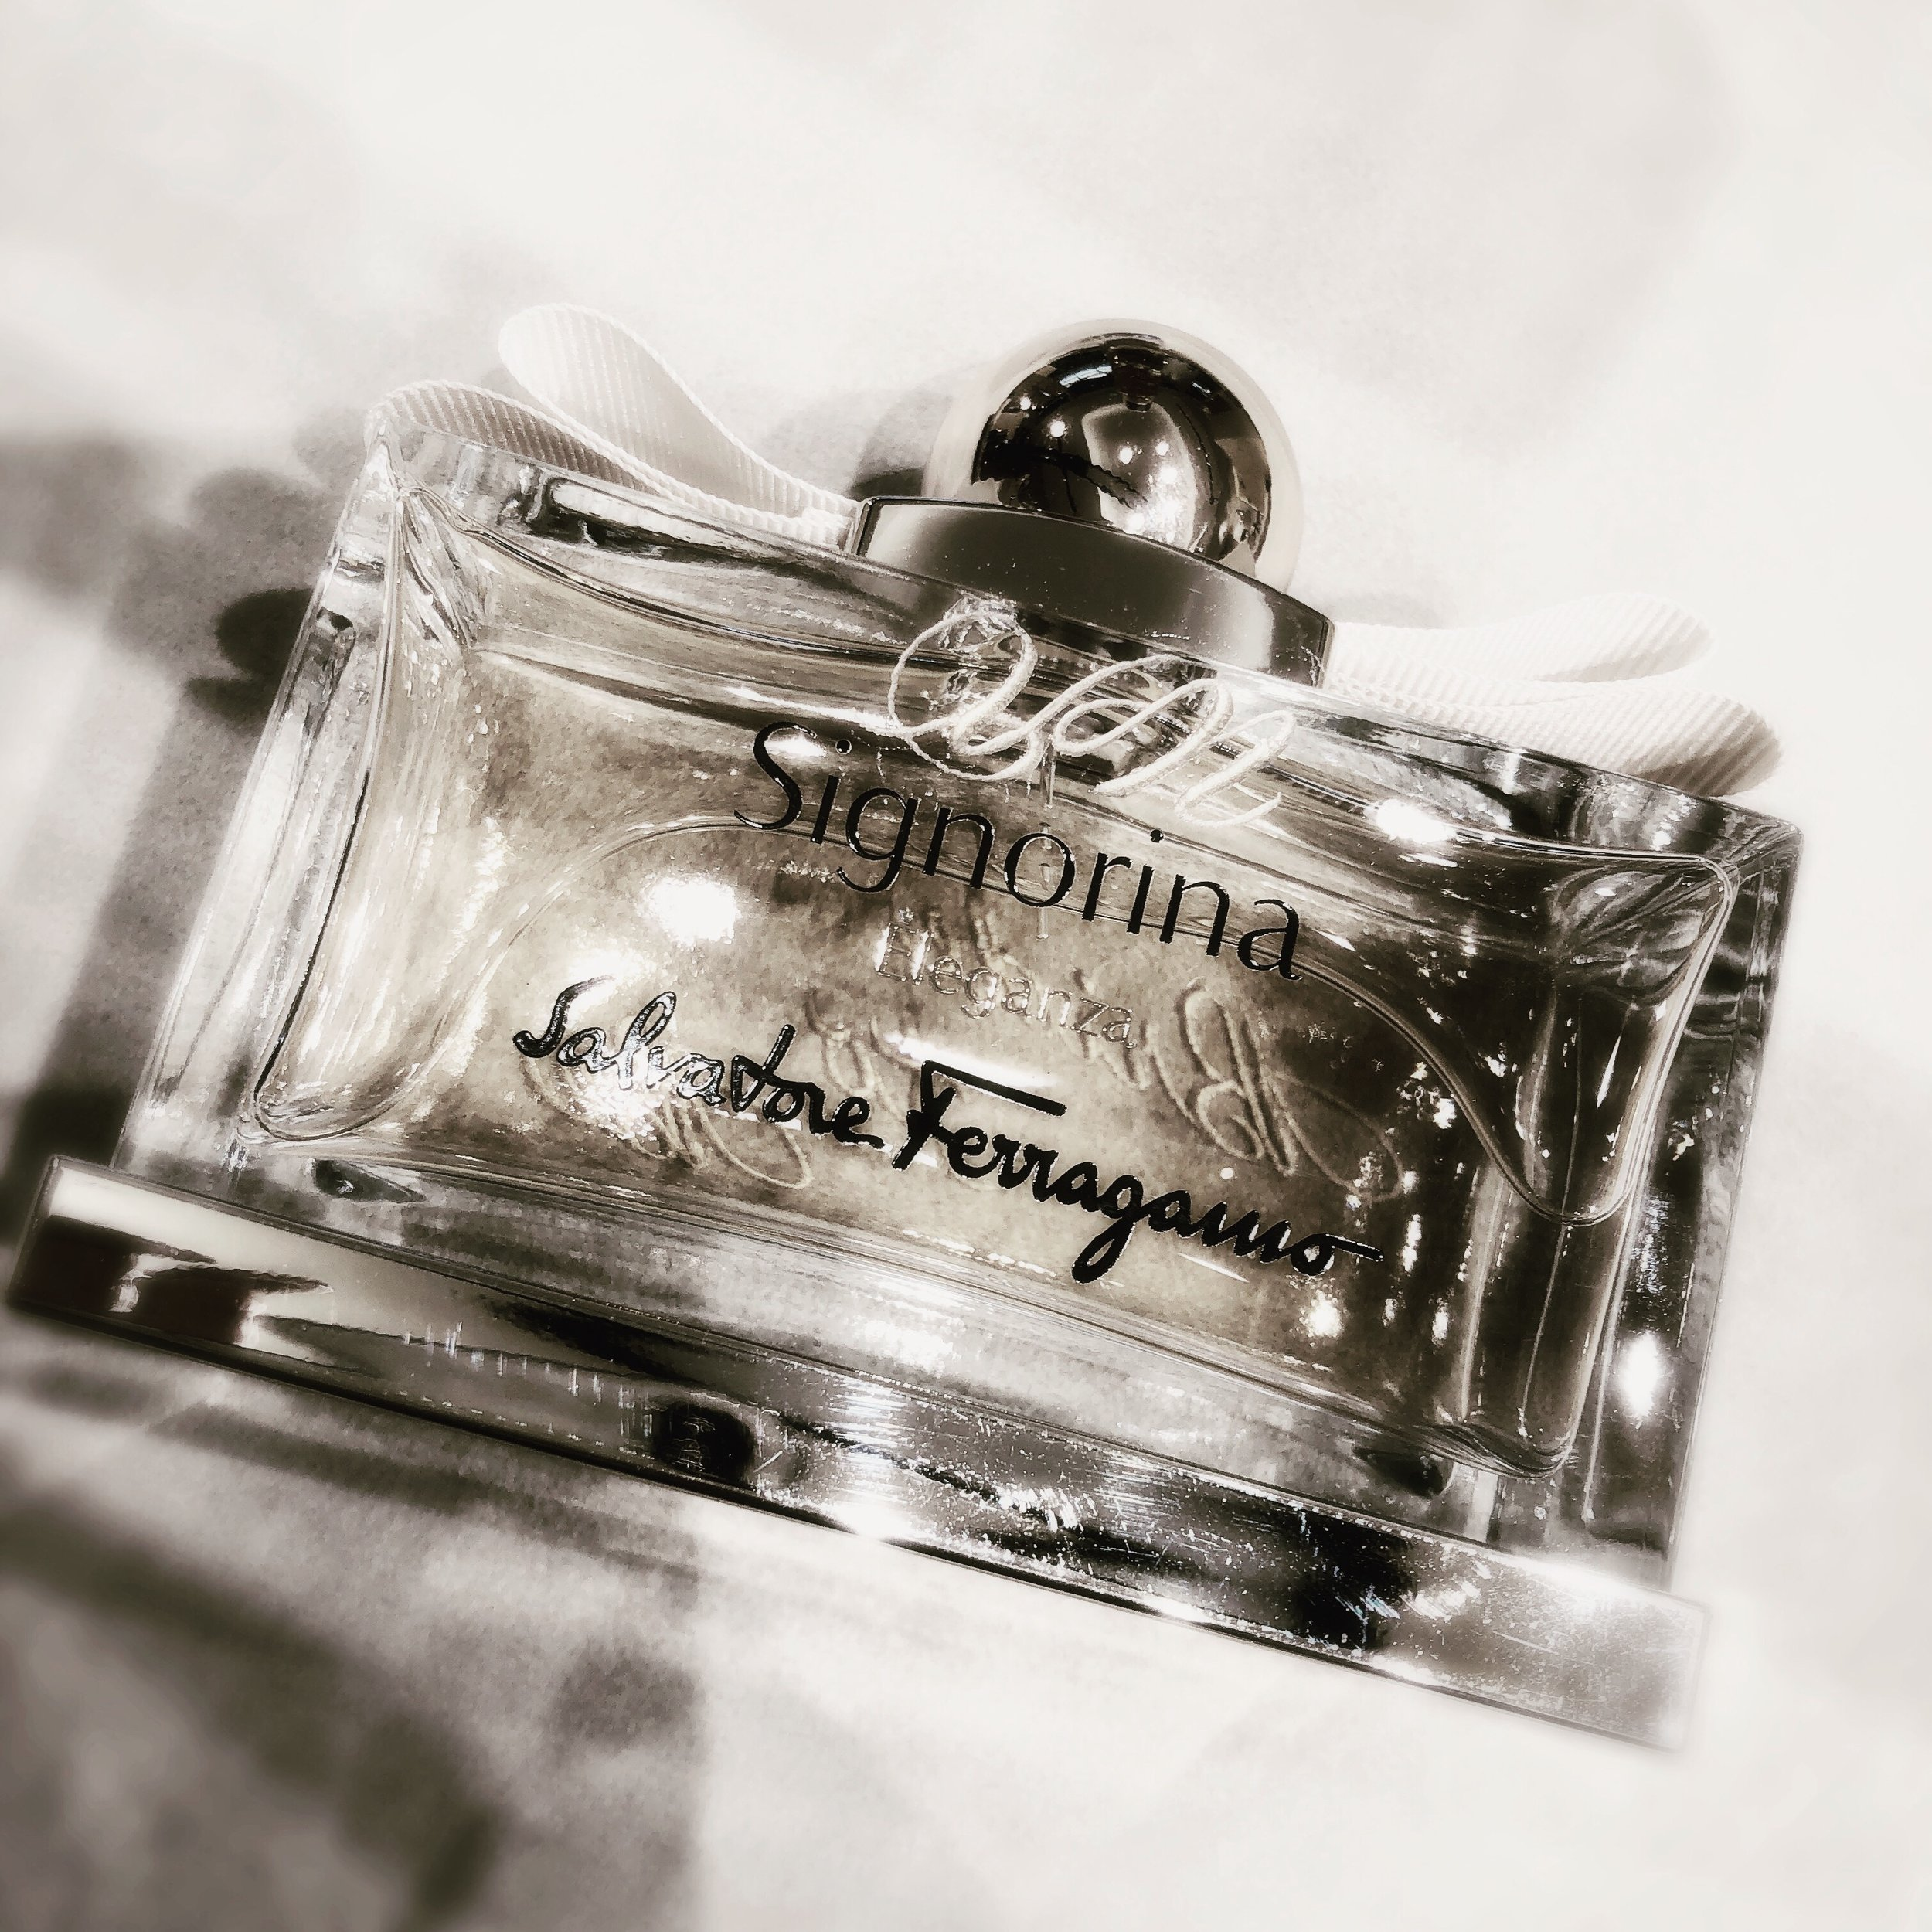 salvatore Ferragamo fragrance perfume bottle engraving houston dallas.JPG